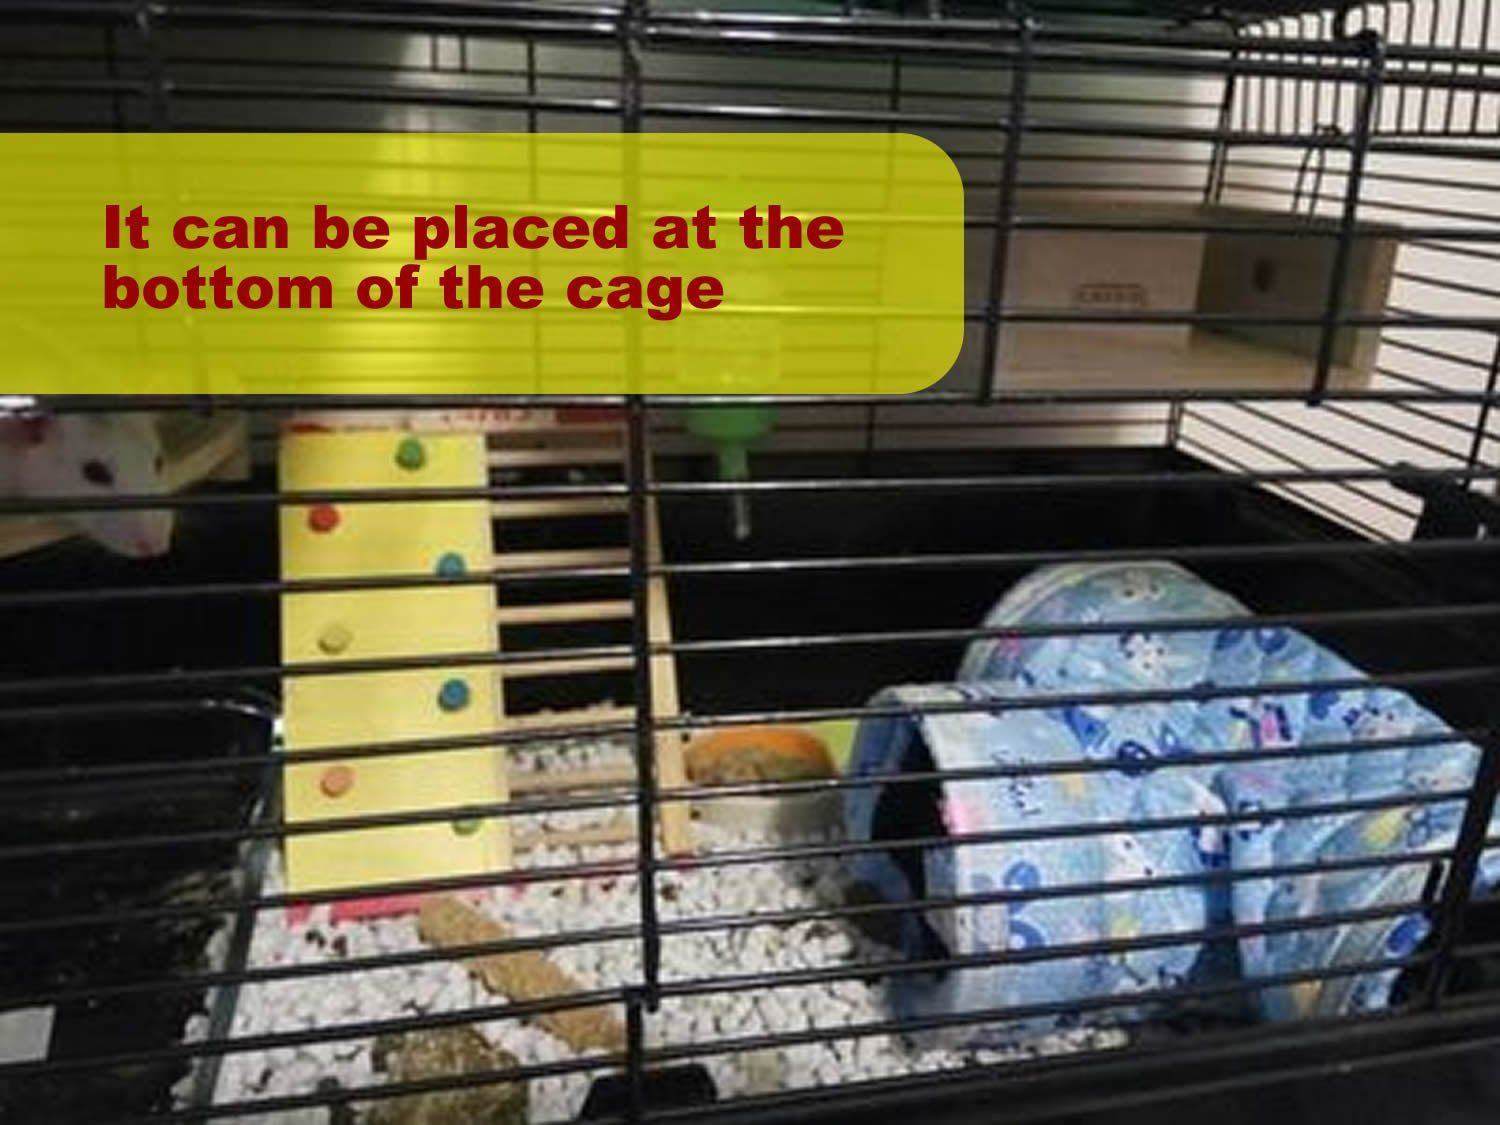 Pin On Small Animal Tubes Tunnels